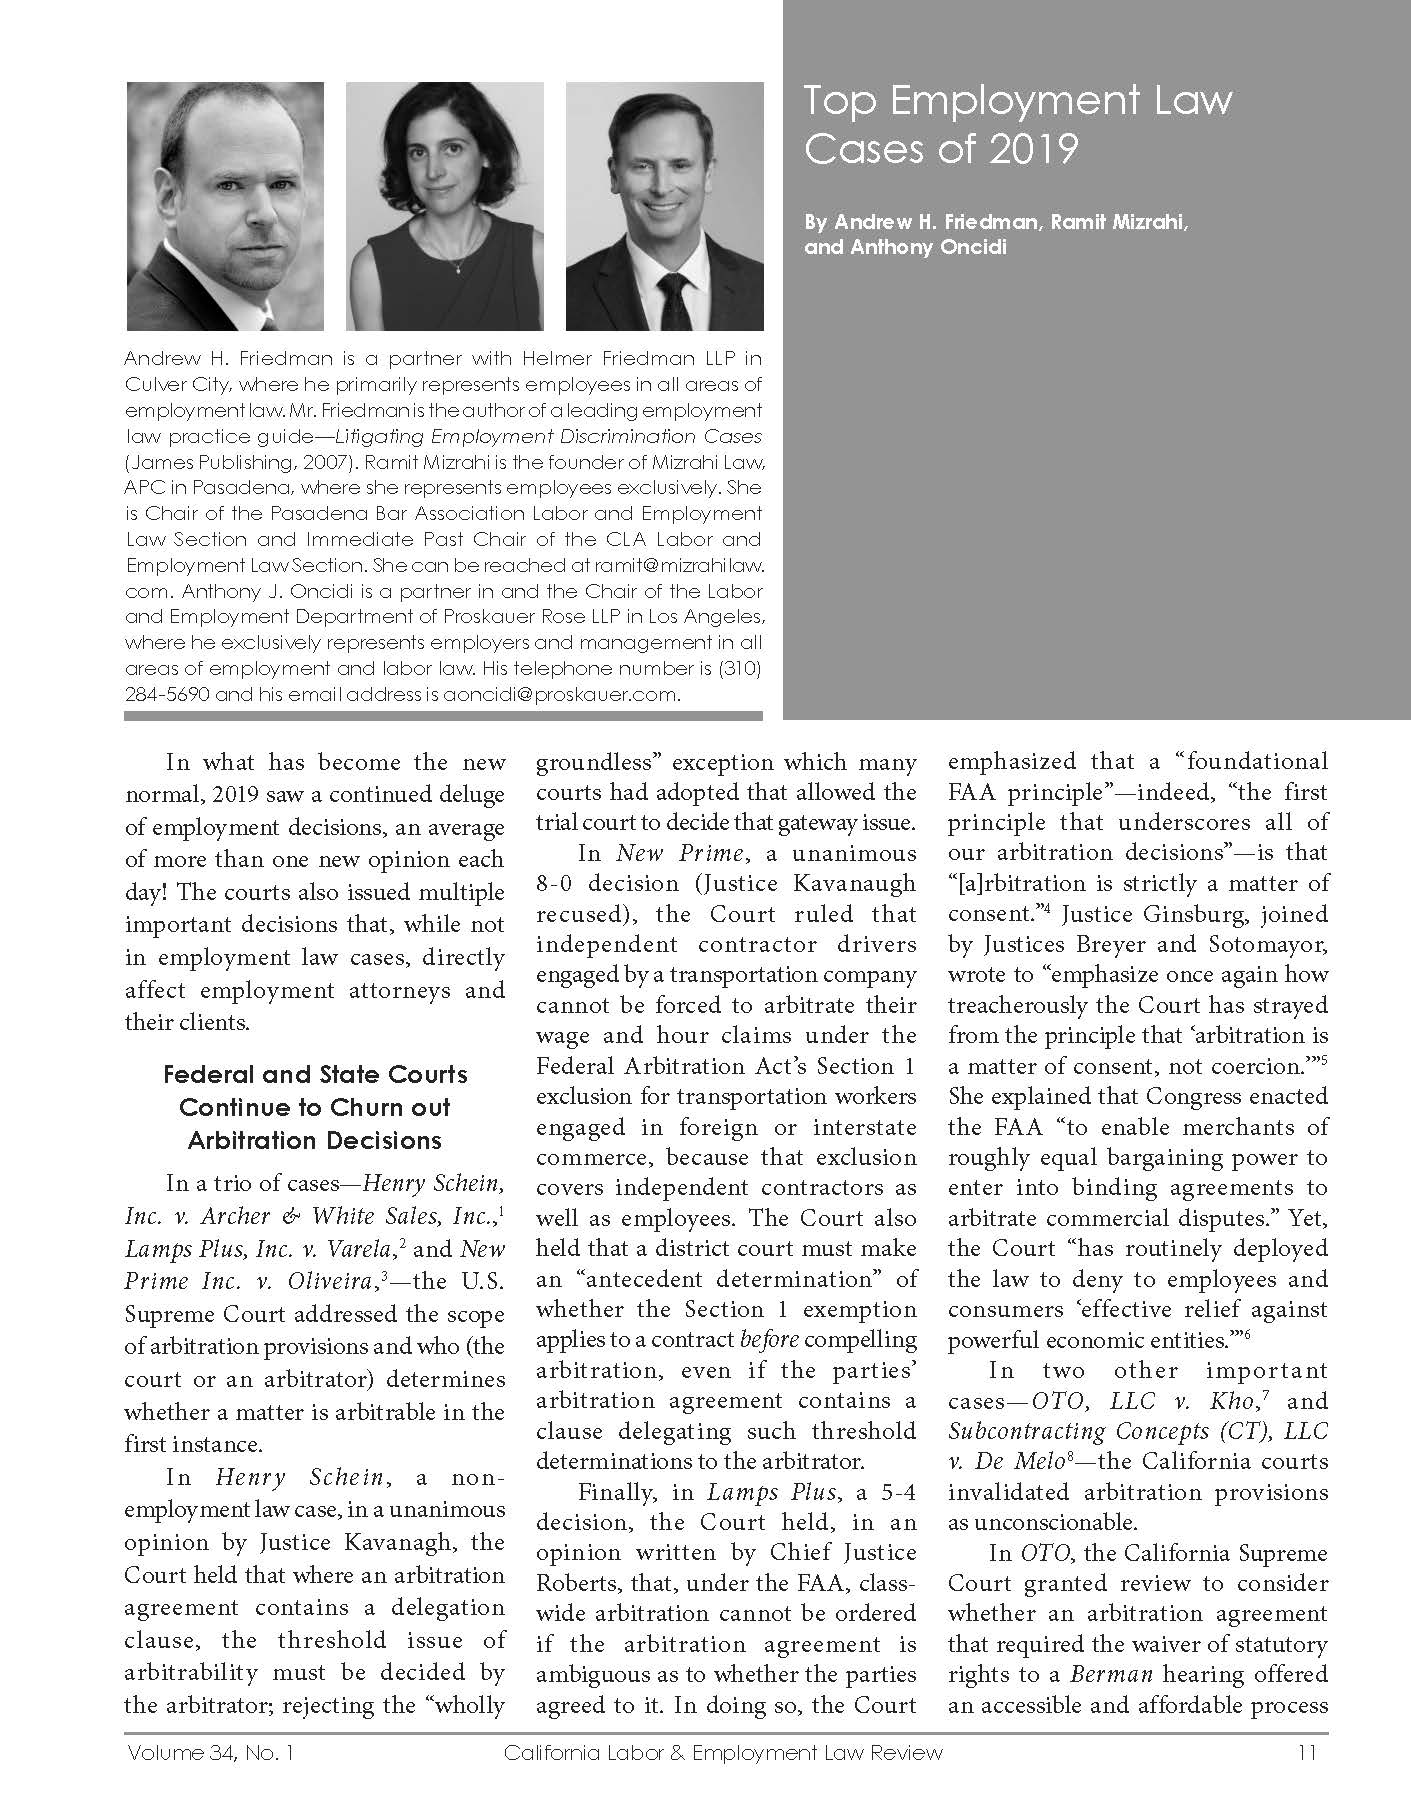 Image of Labor and Employment Law Article